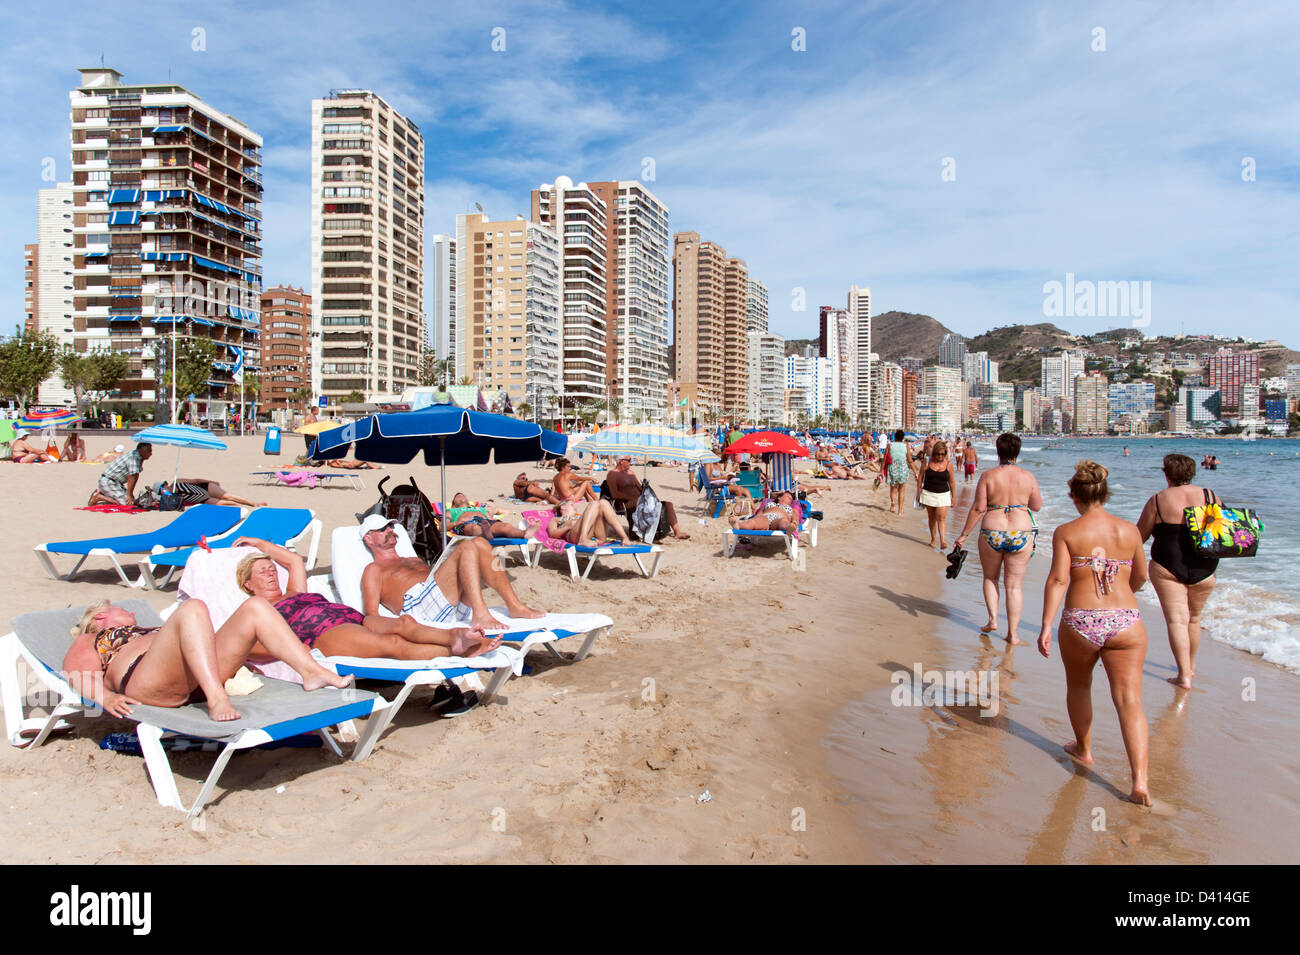 Tourists relaxing on deckchairs at the beach, Benidorm, Costa Blanca, Spain - Stock Image